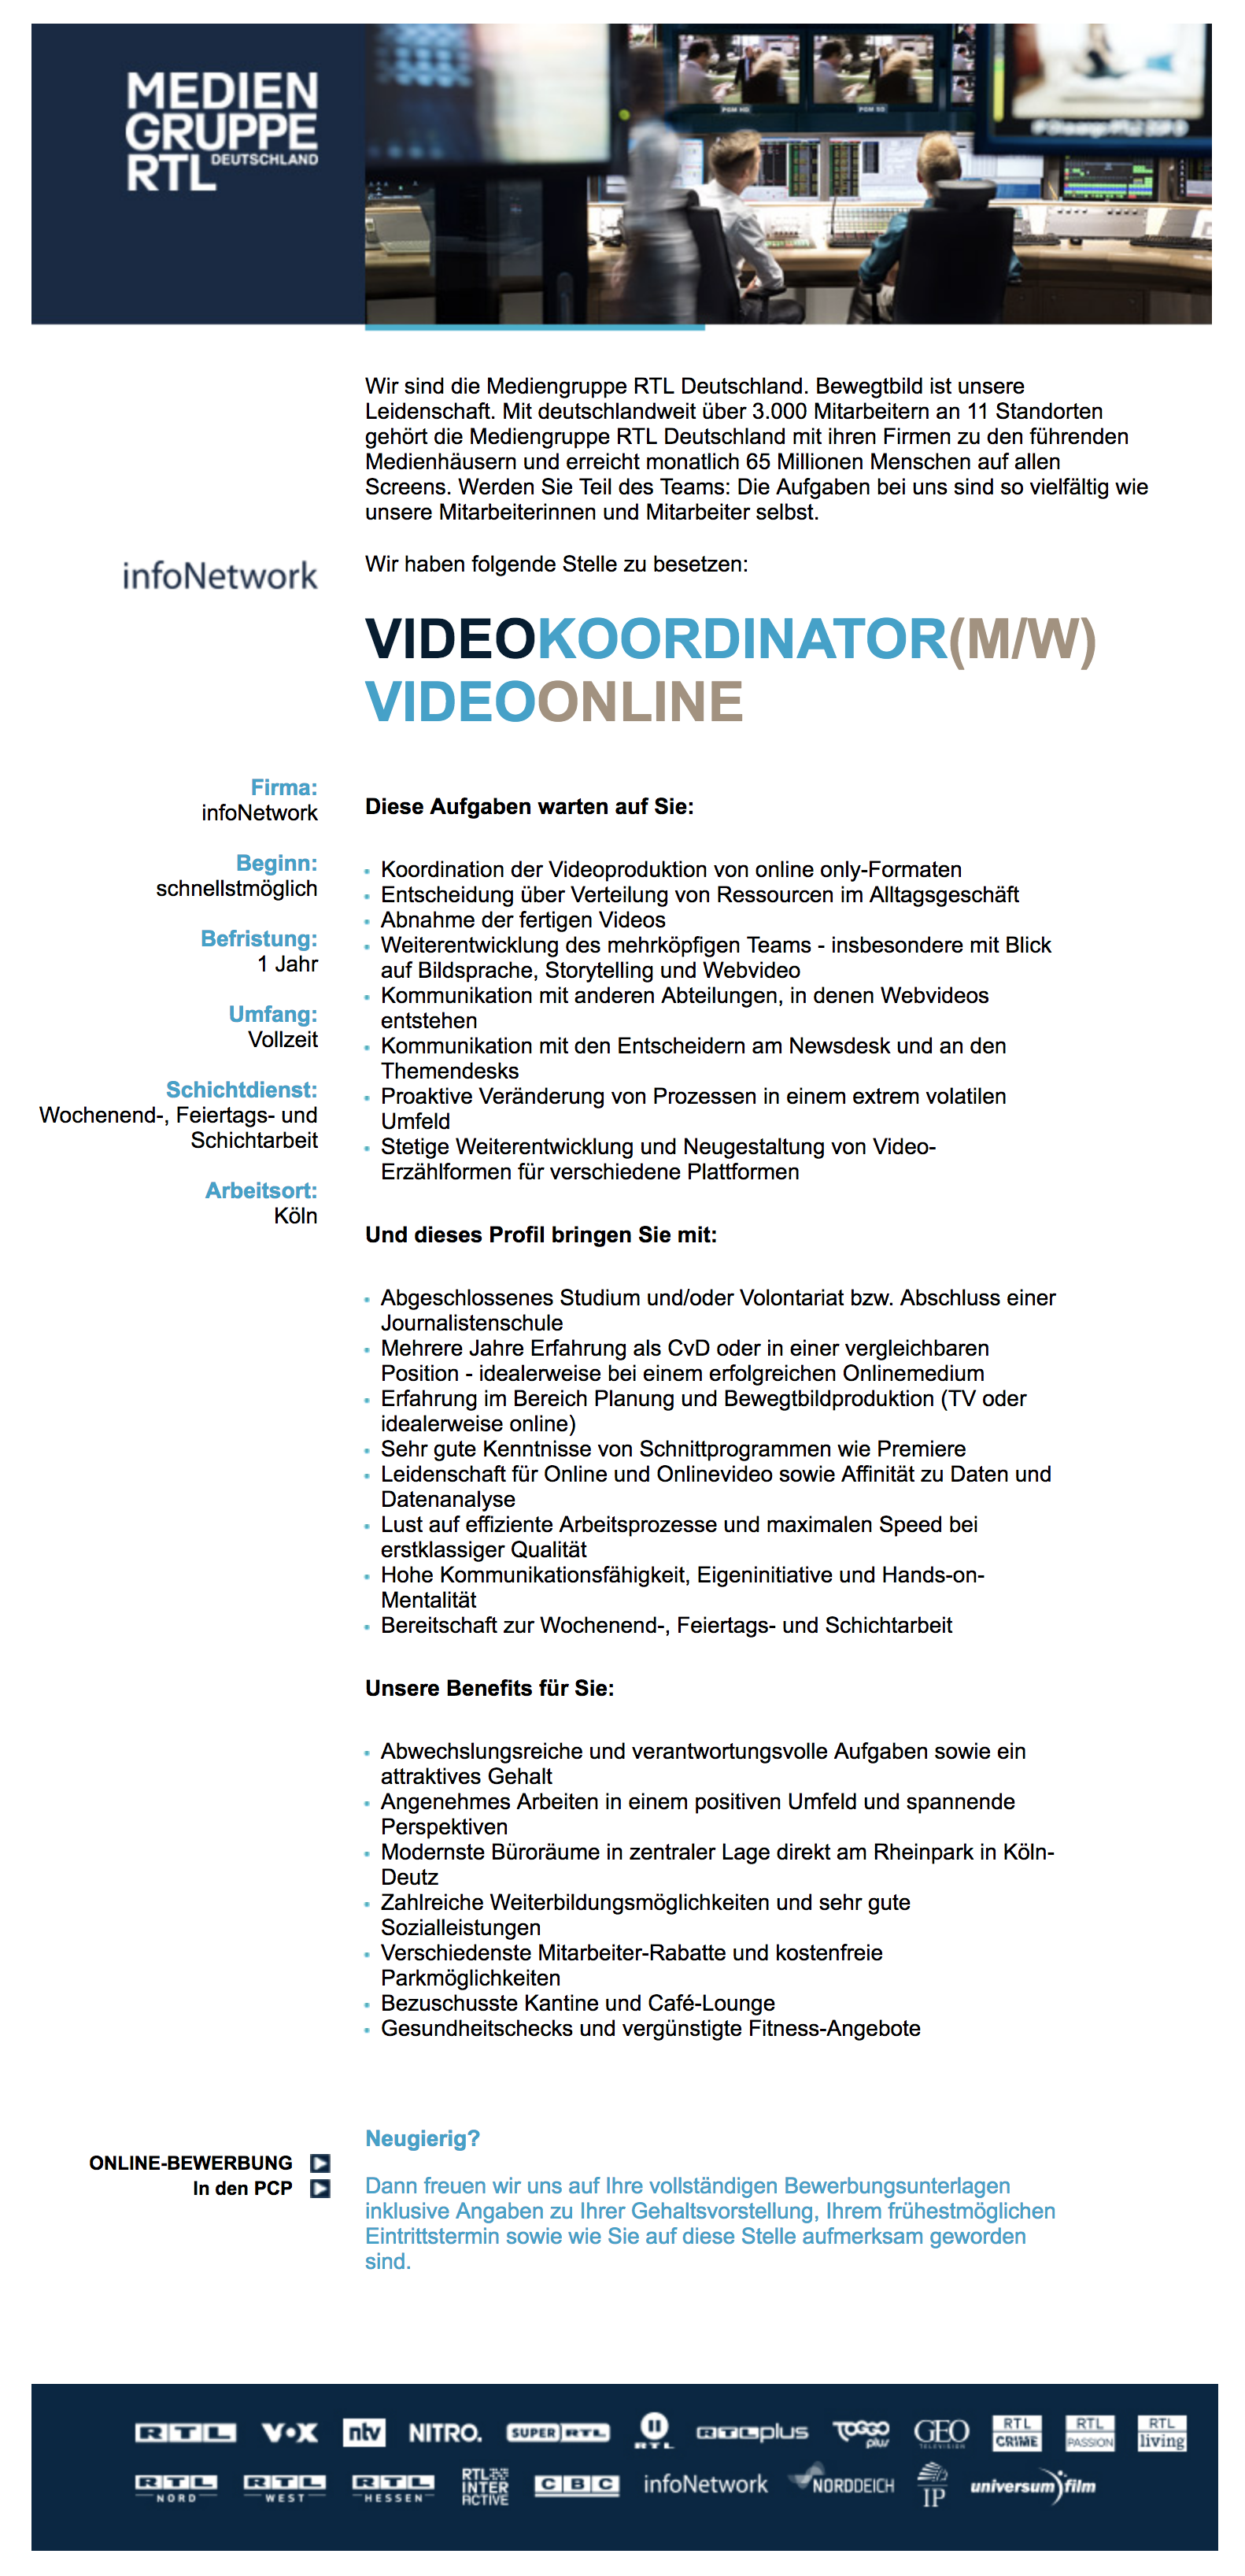 Video Koordinator (m/w) Video Online (infoNetwork)